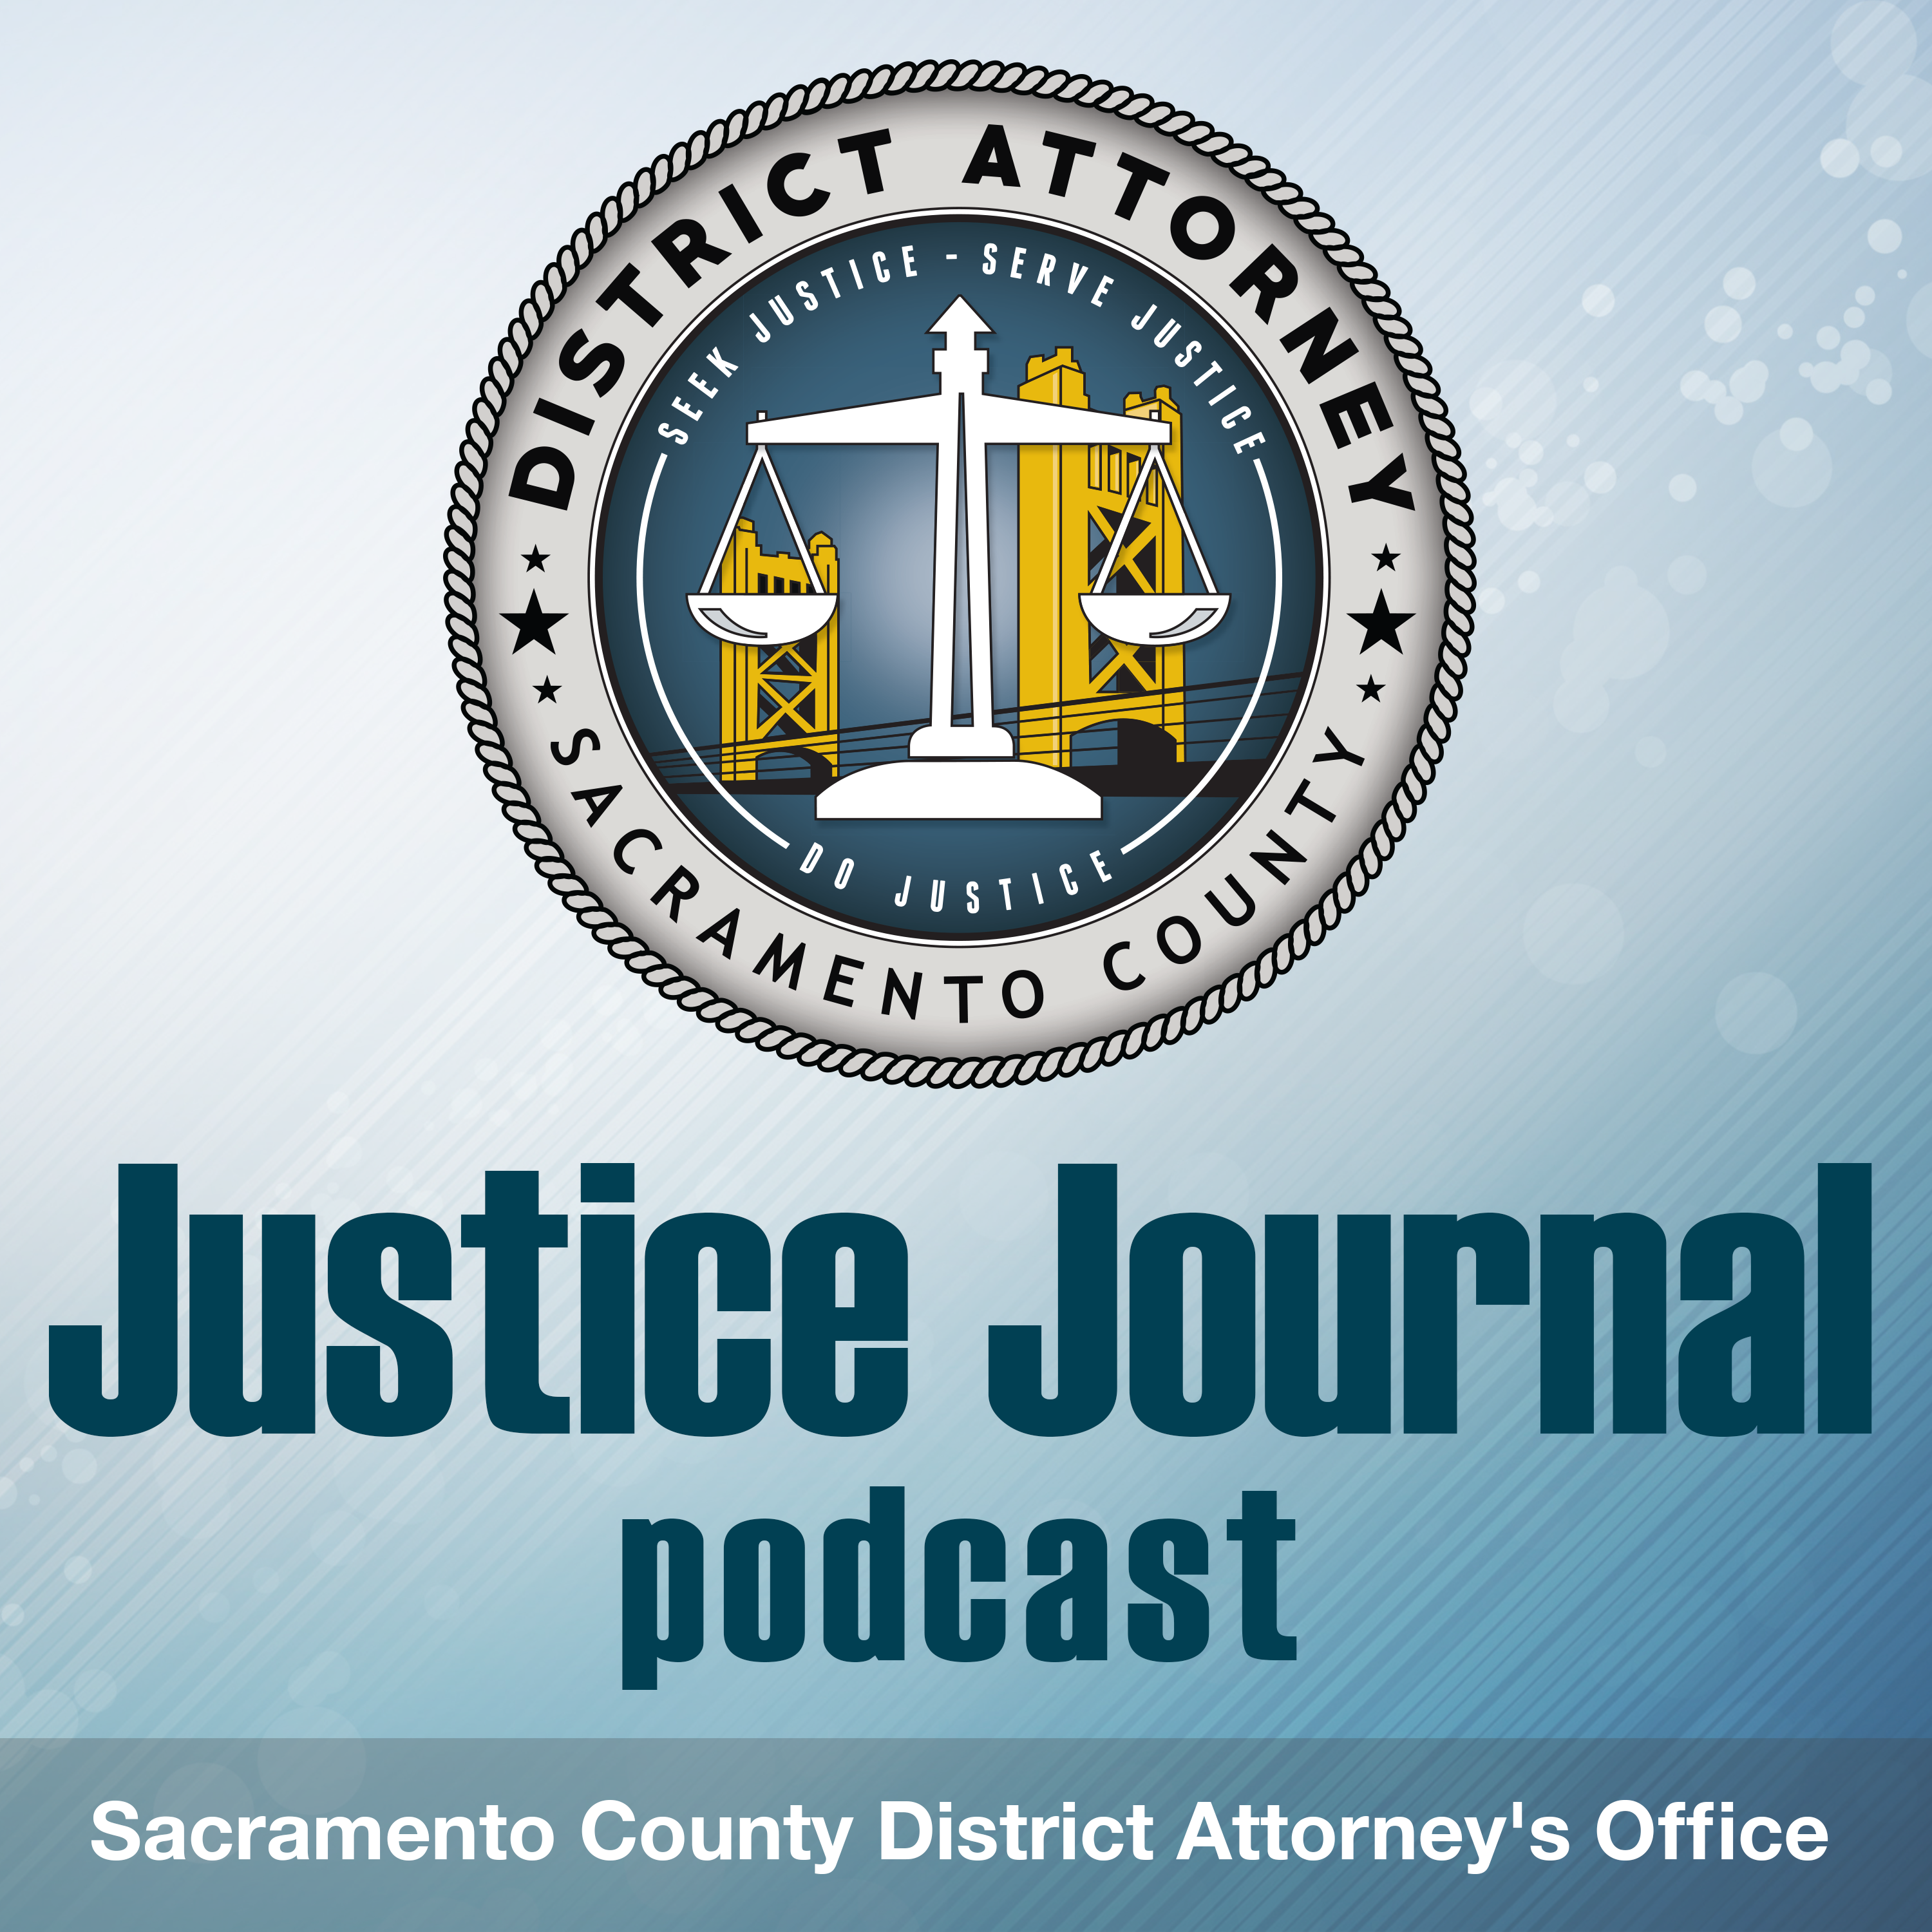 Sacramento County's Criminal Justice System Successfully Continues Jury Trials During COVID-19 - Justice Journal Episode 43